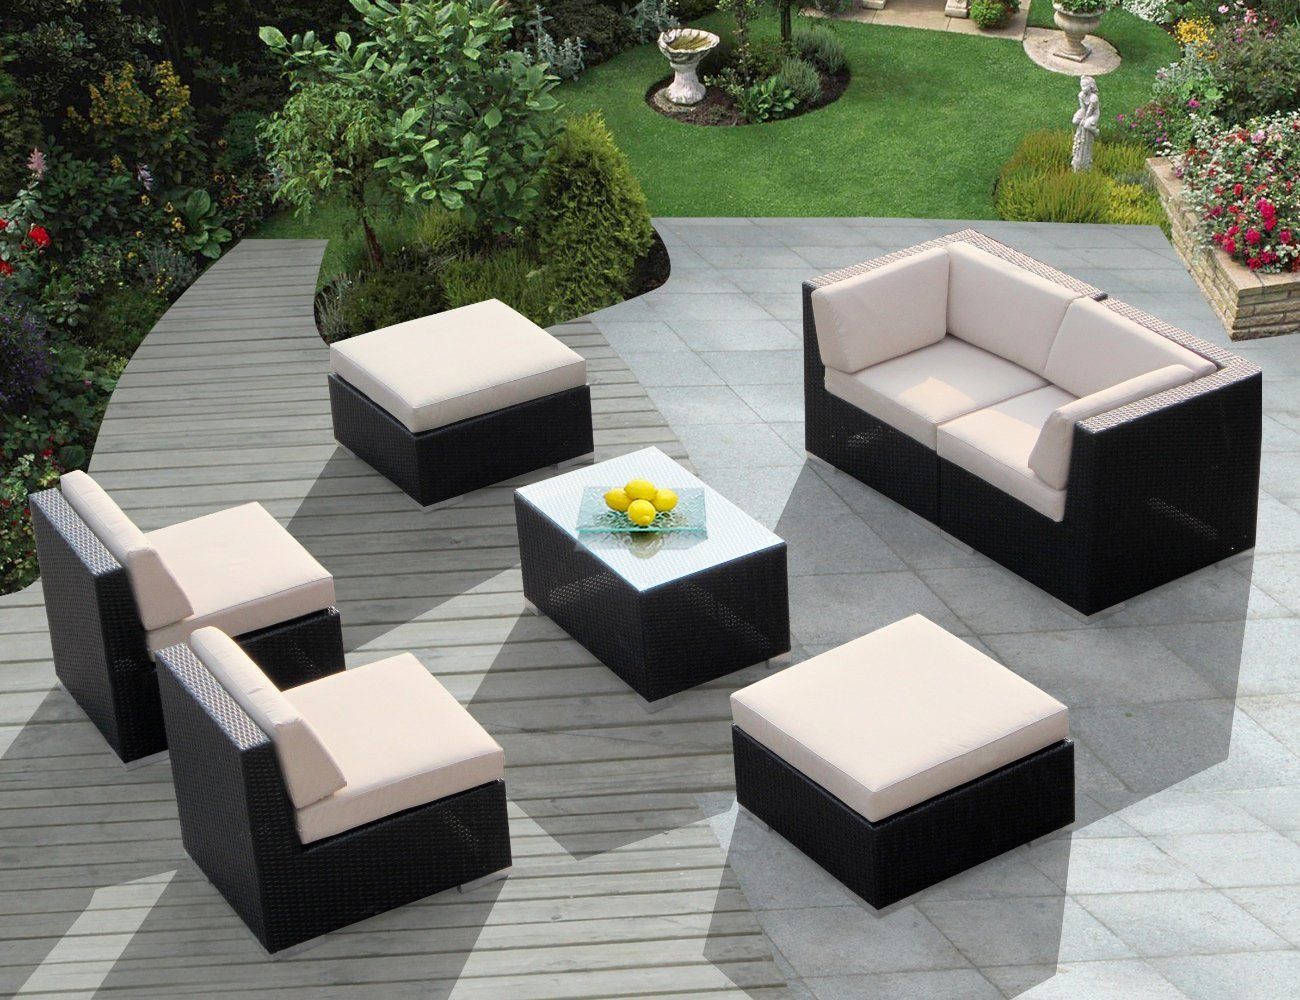 Strathwood outdoor patio furniture buy cheap strathwood for Garden patio furniture sets